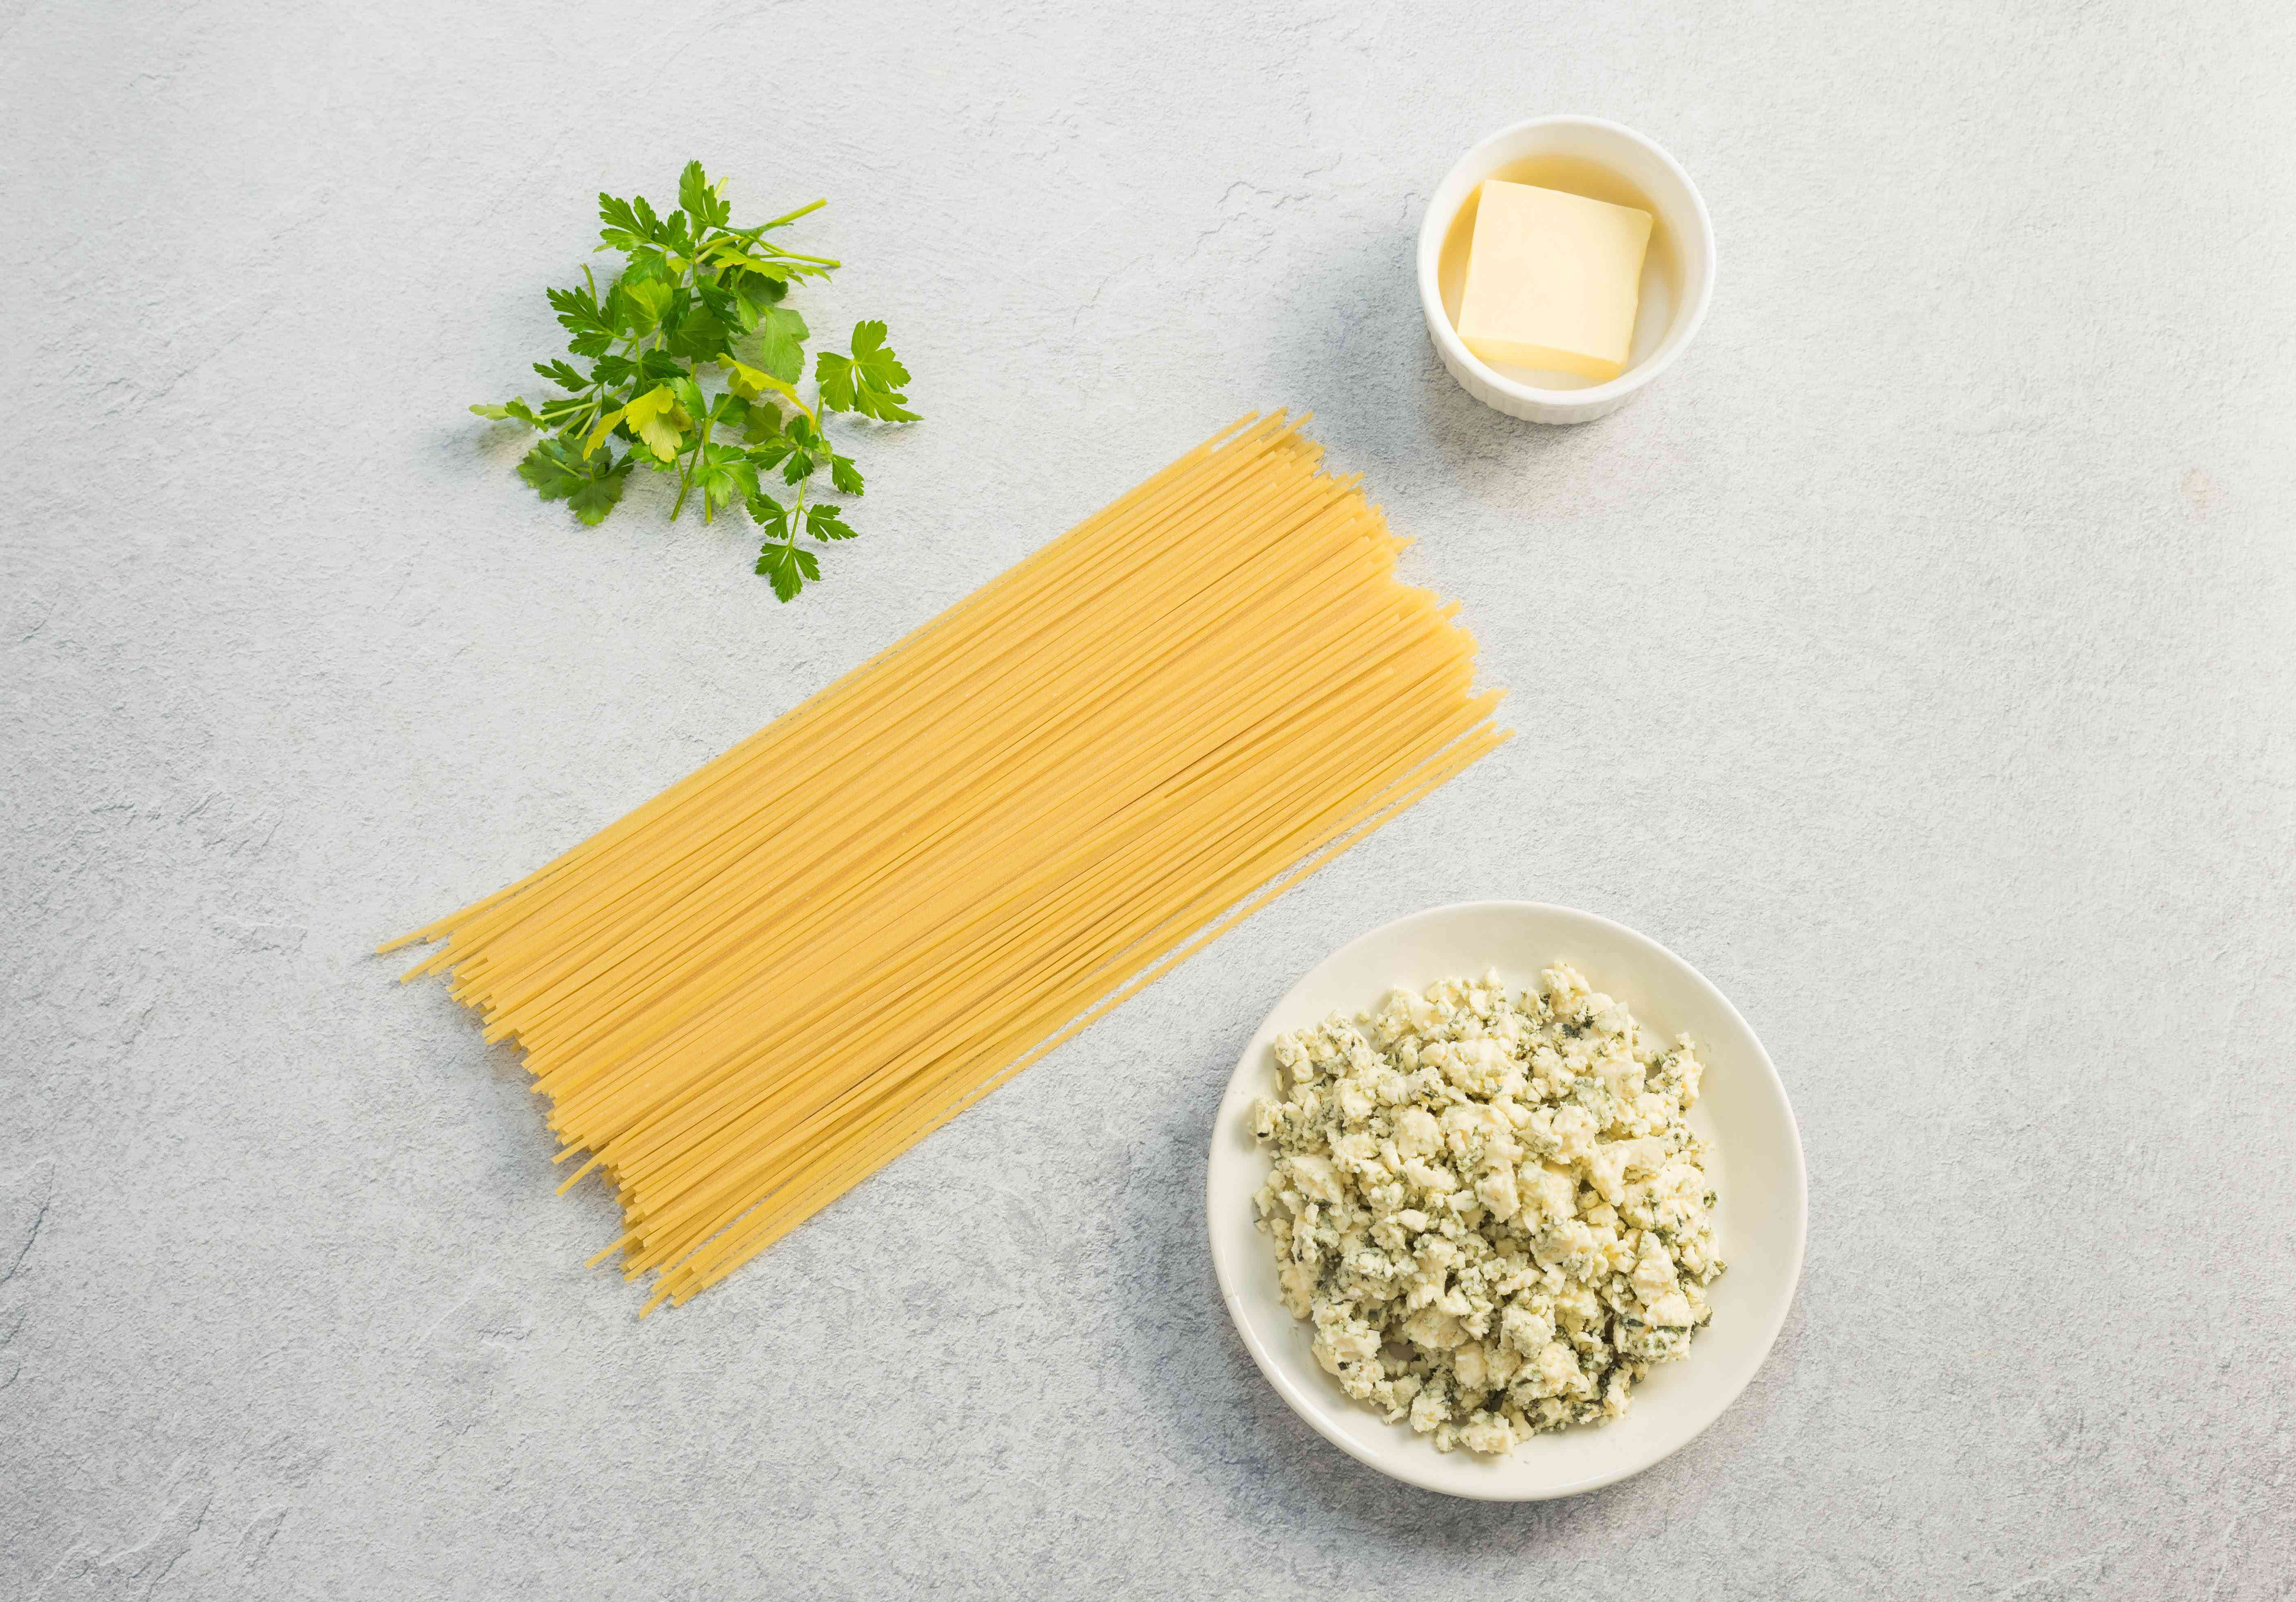 Ingredients for easy blue cheese sauce